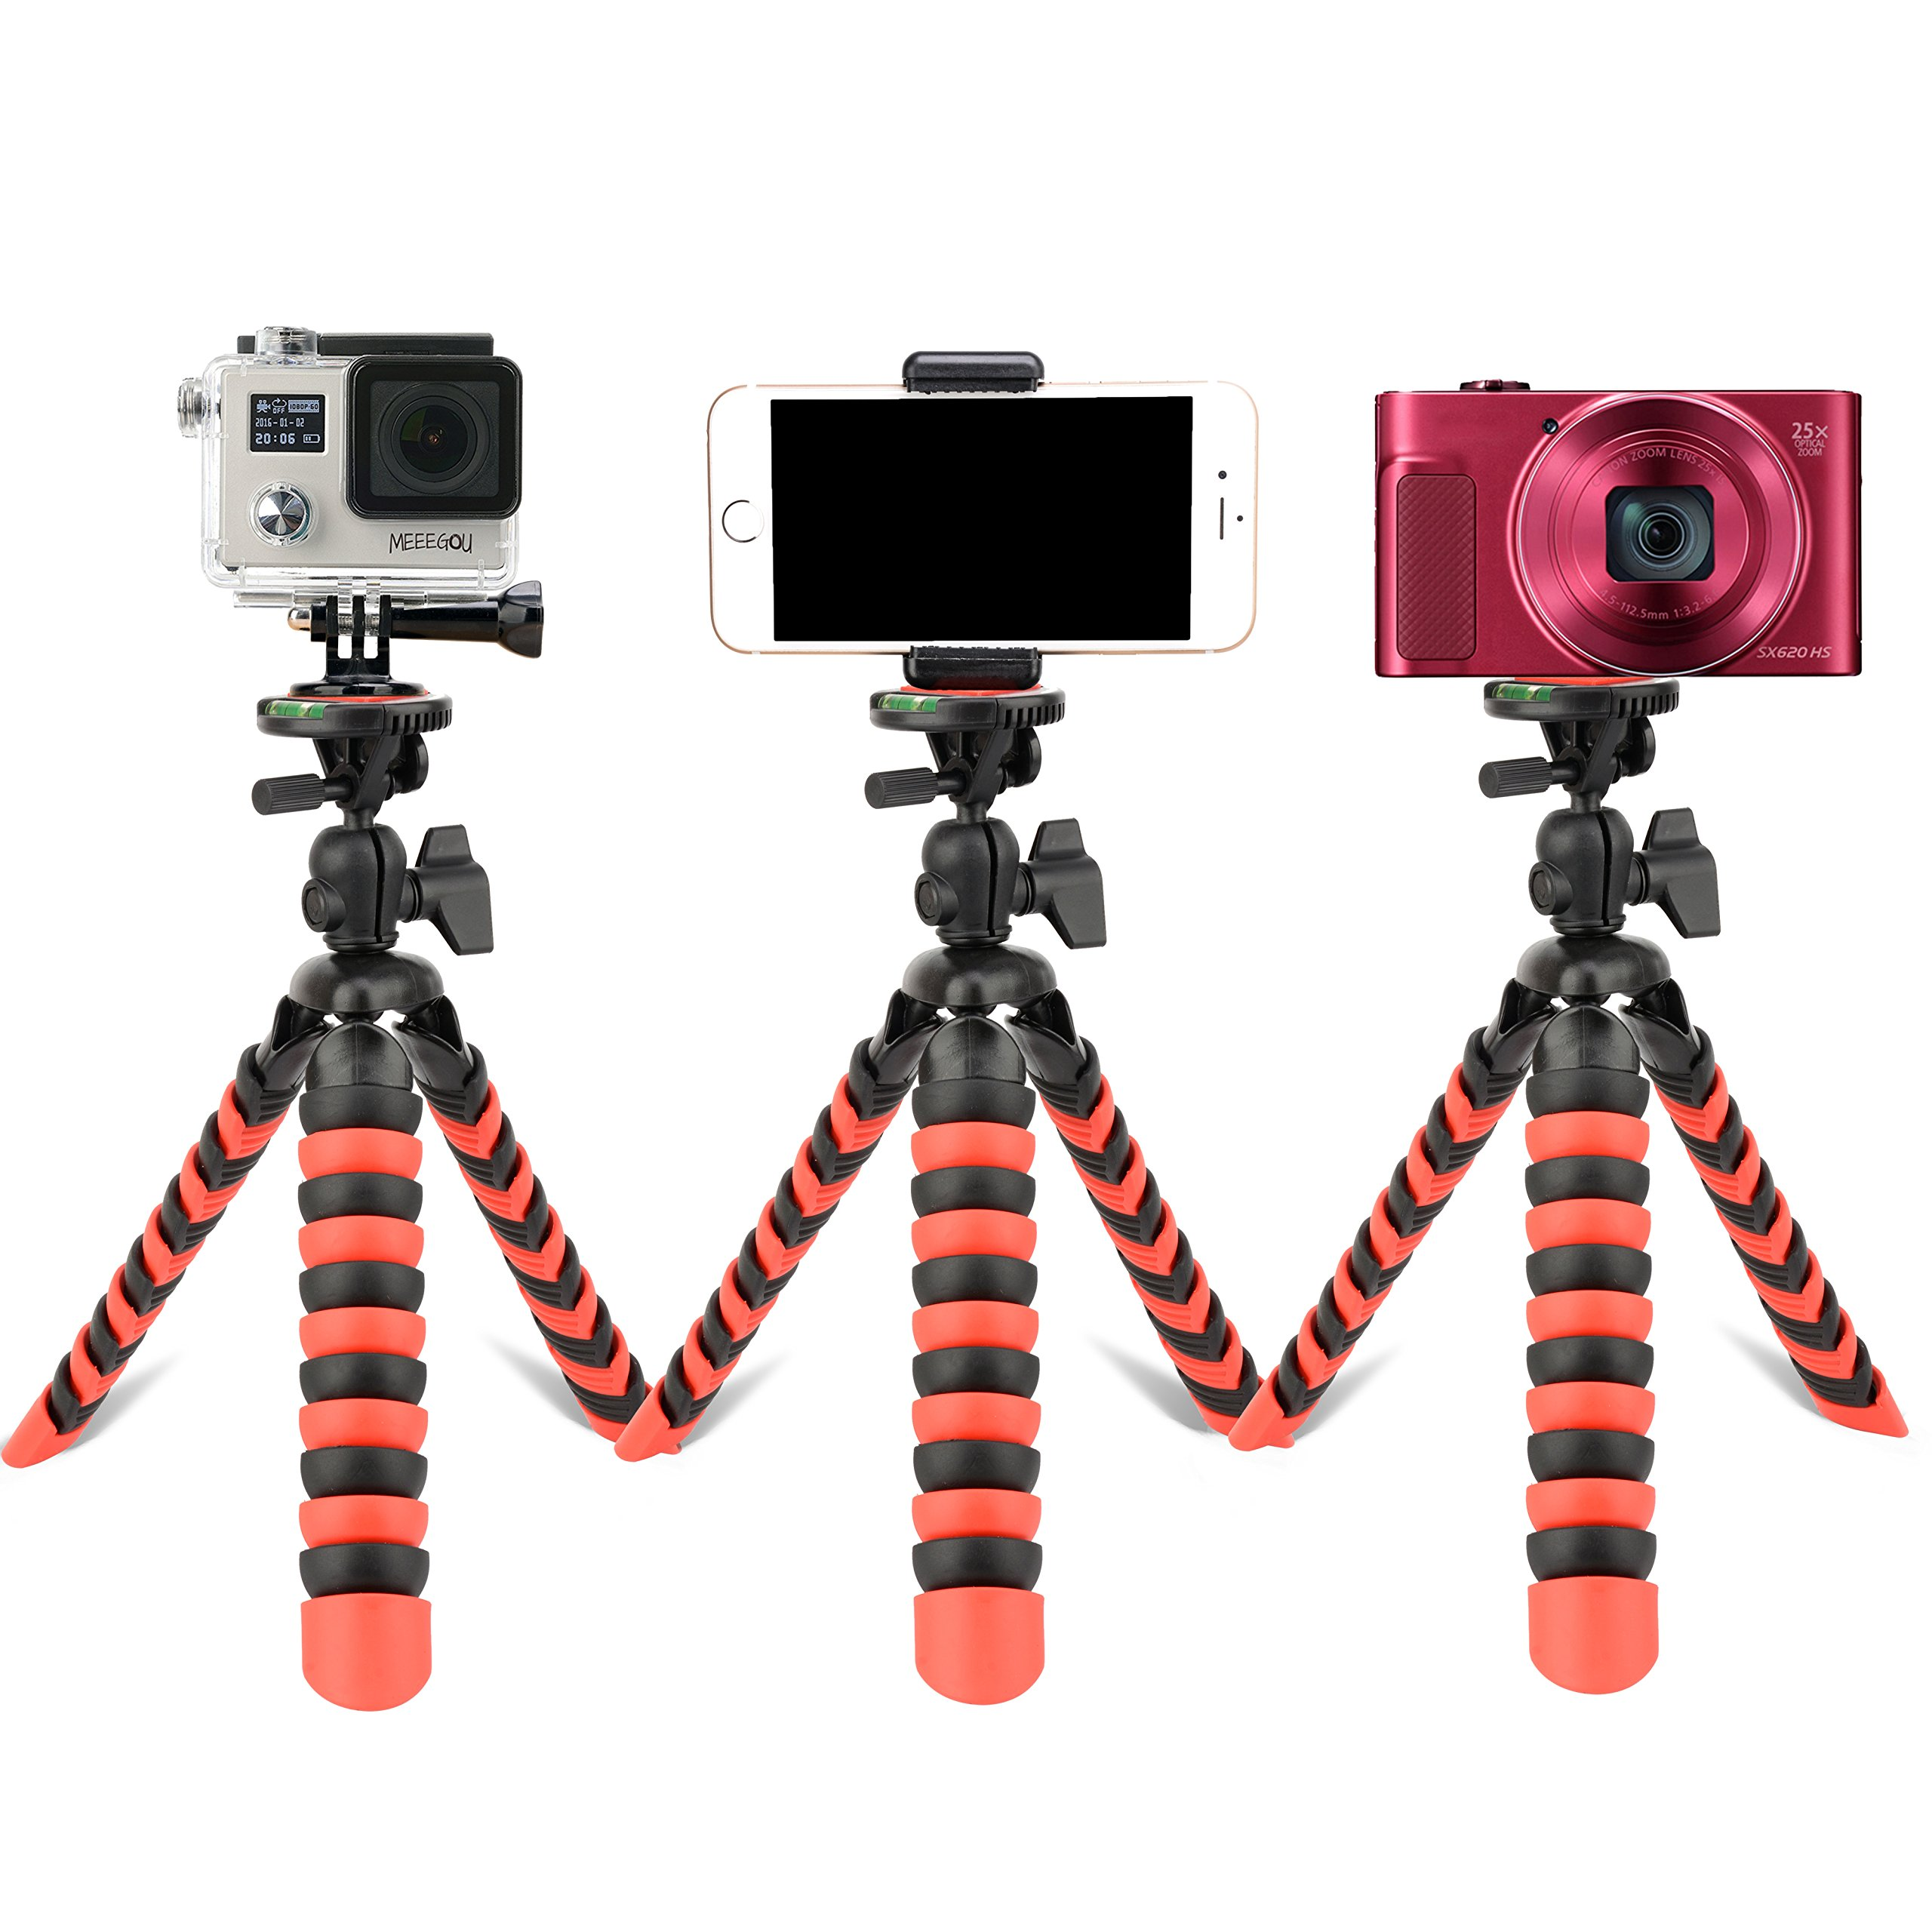 Tairoad Flexible Mini Tripod with Quick Release Plate with Tripod Mount Adapter for Smartphone Gopro